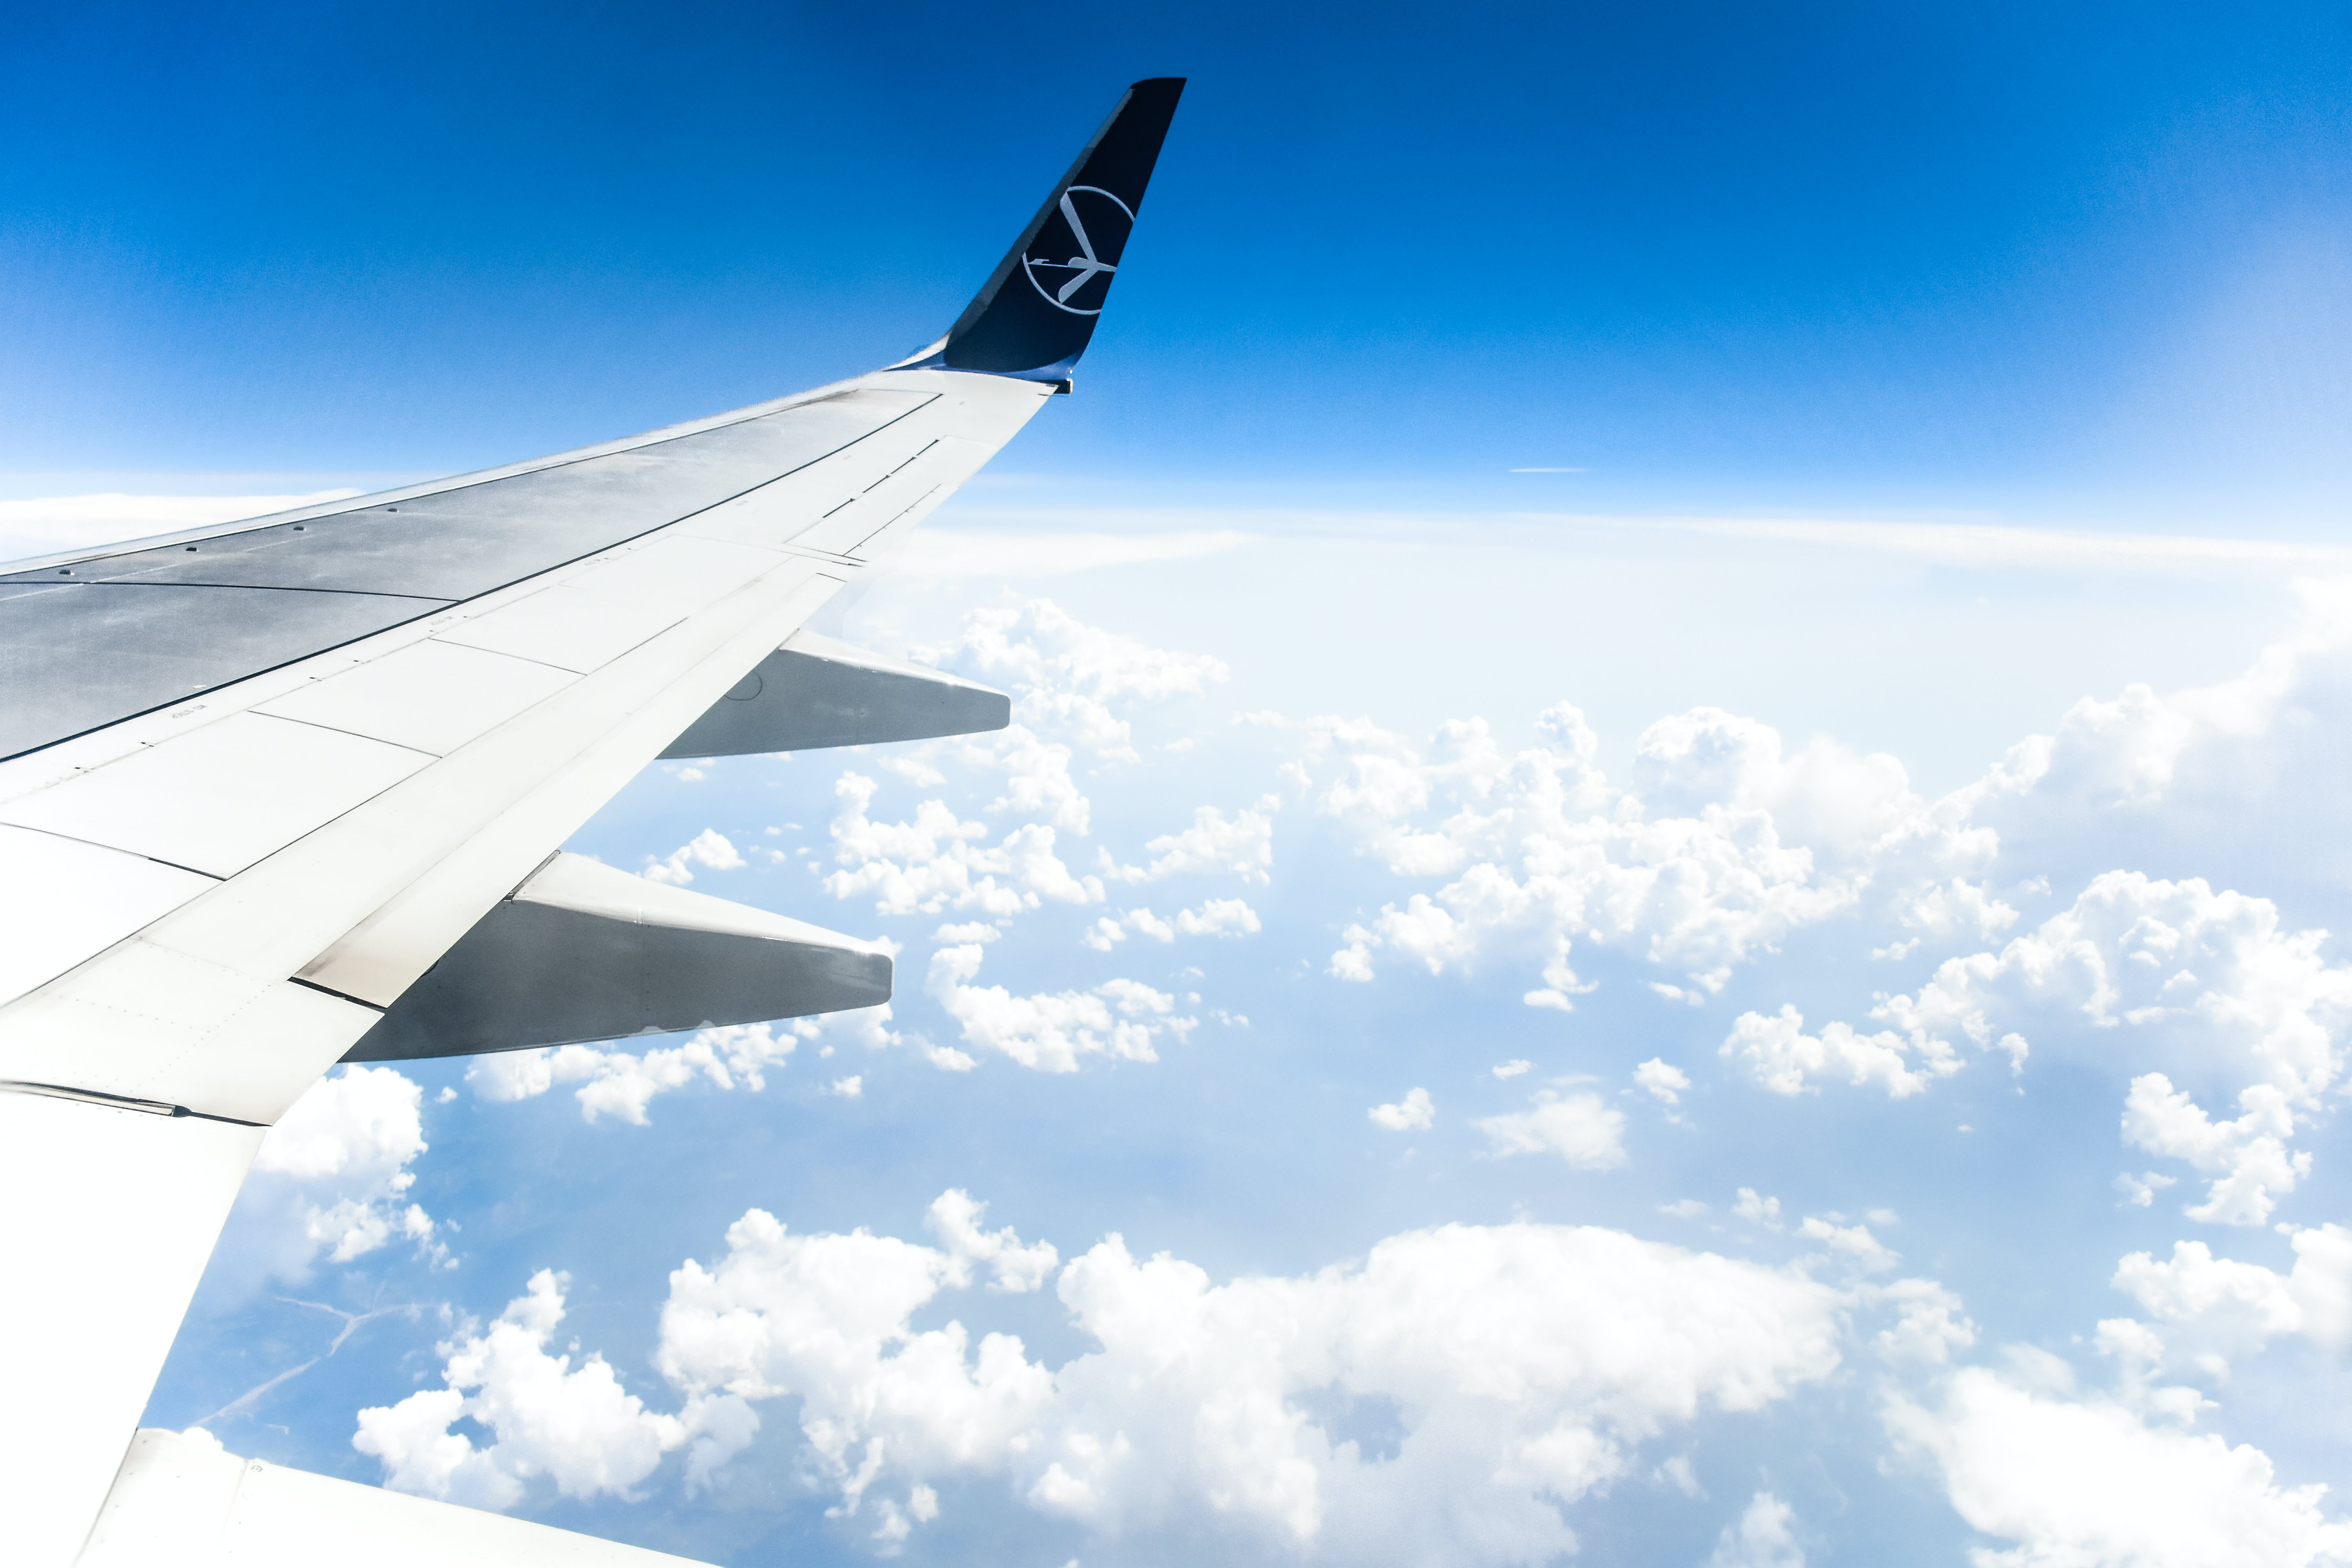 Free stock photo of fly, high, in sky, plane